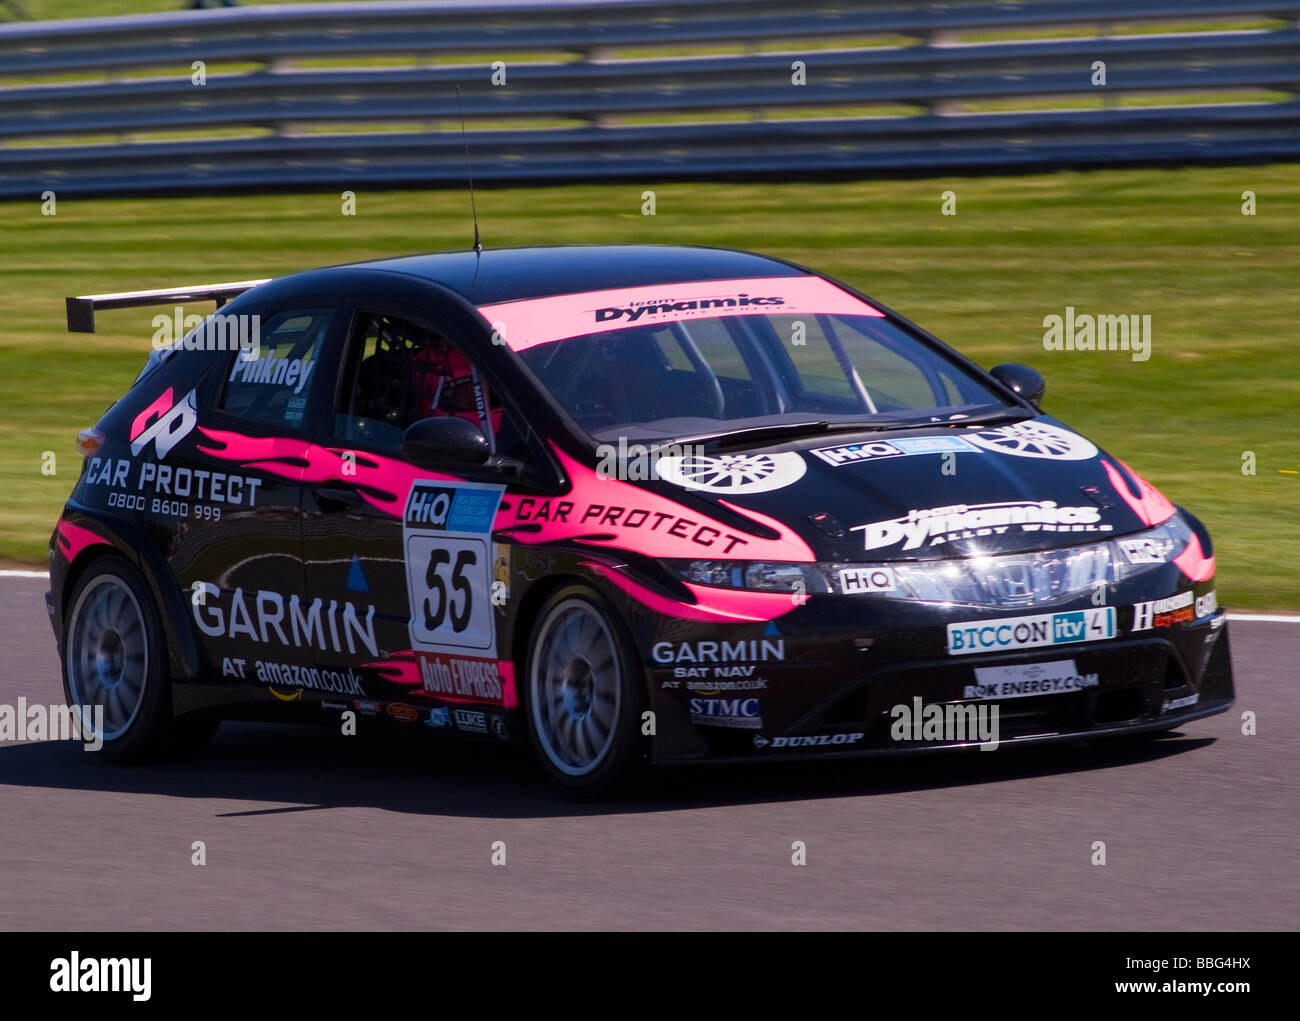 Team Dynamics Honda Civic Race Car In British Touring Car Championship At  Oulton Park Cheshire England UK